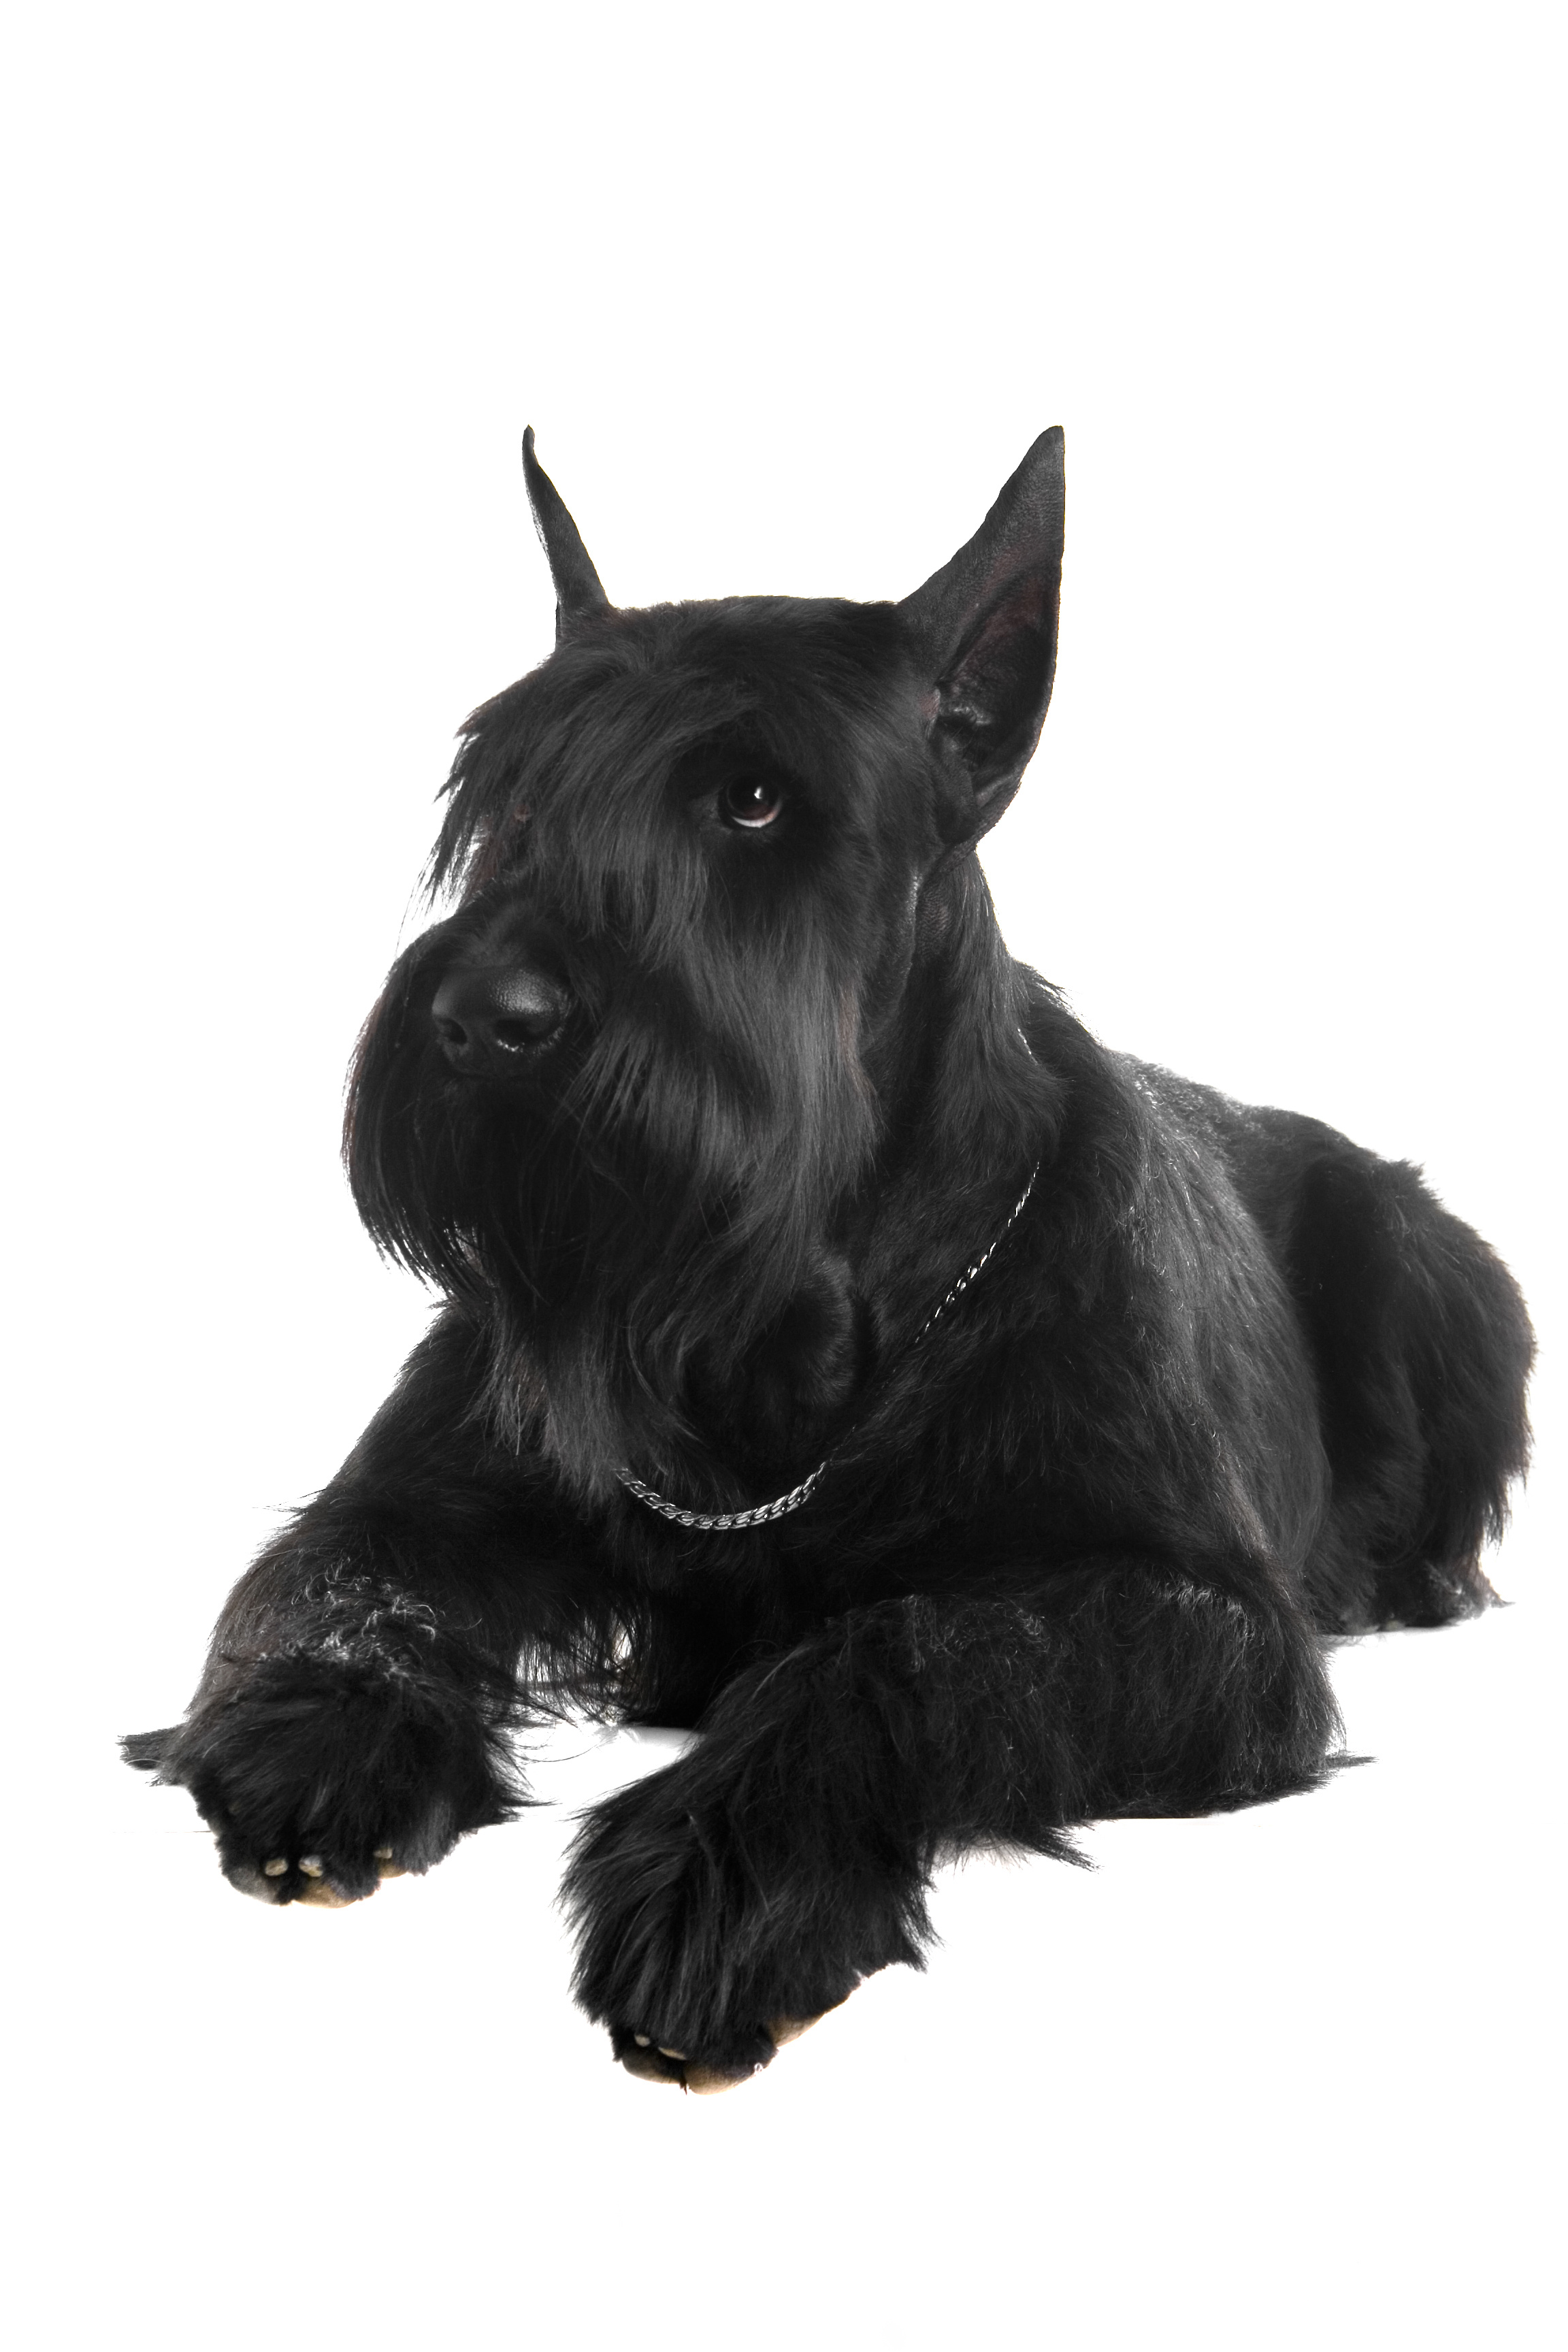 Black Giant Schnauzer lying down in front of white background